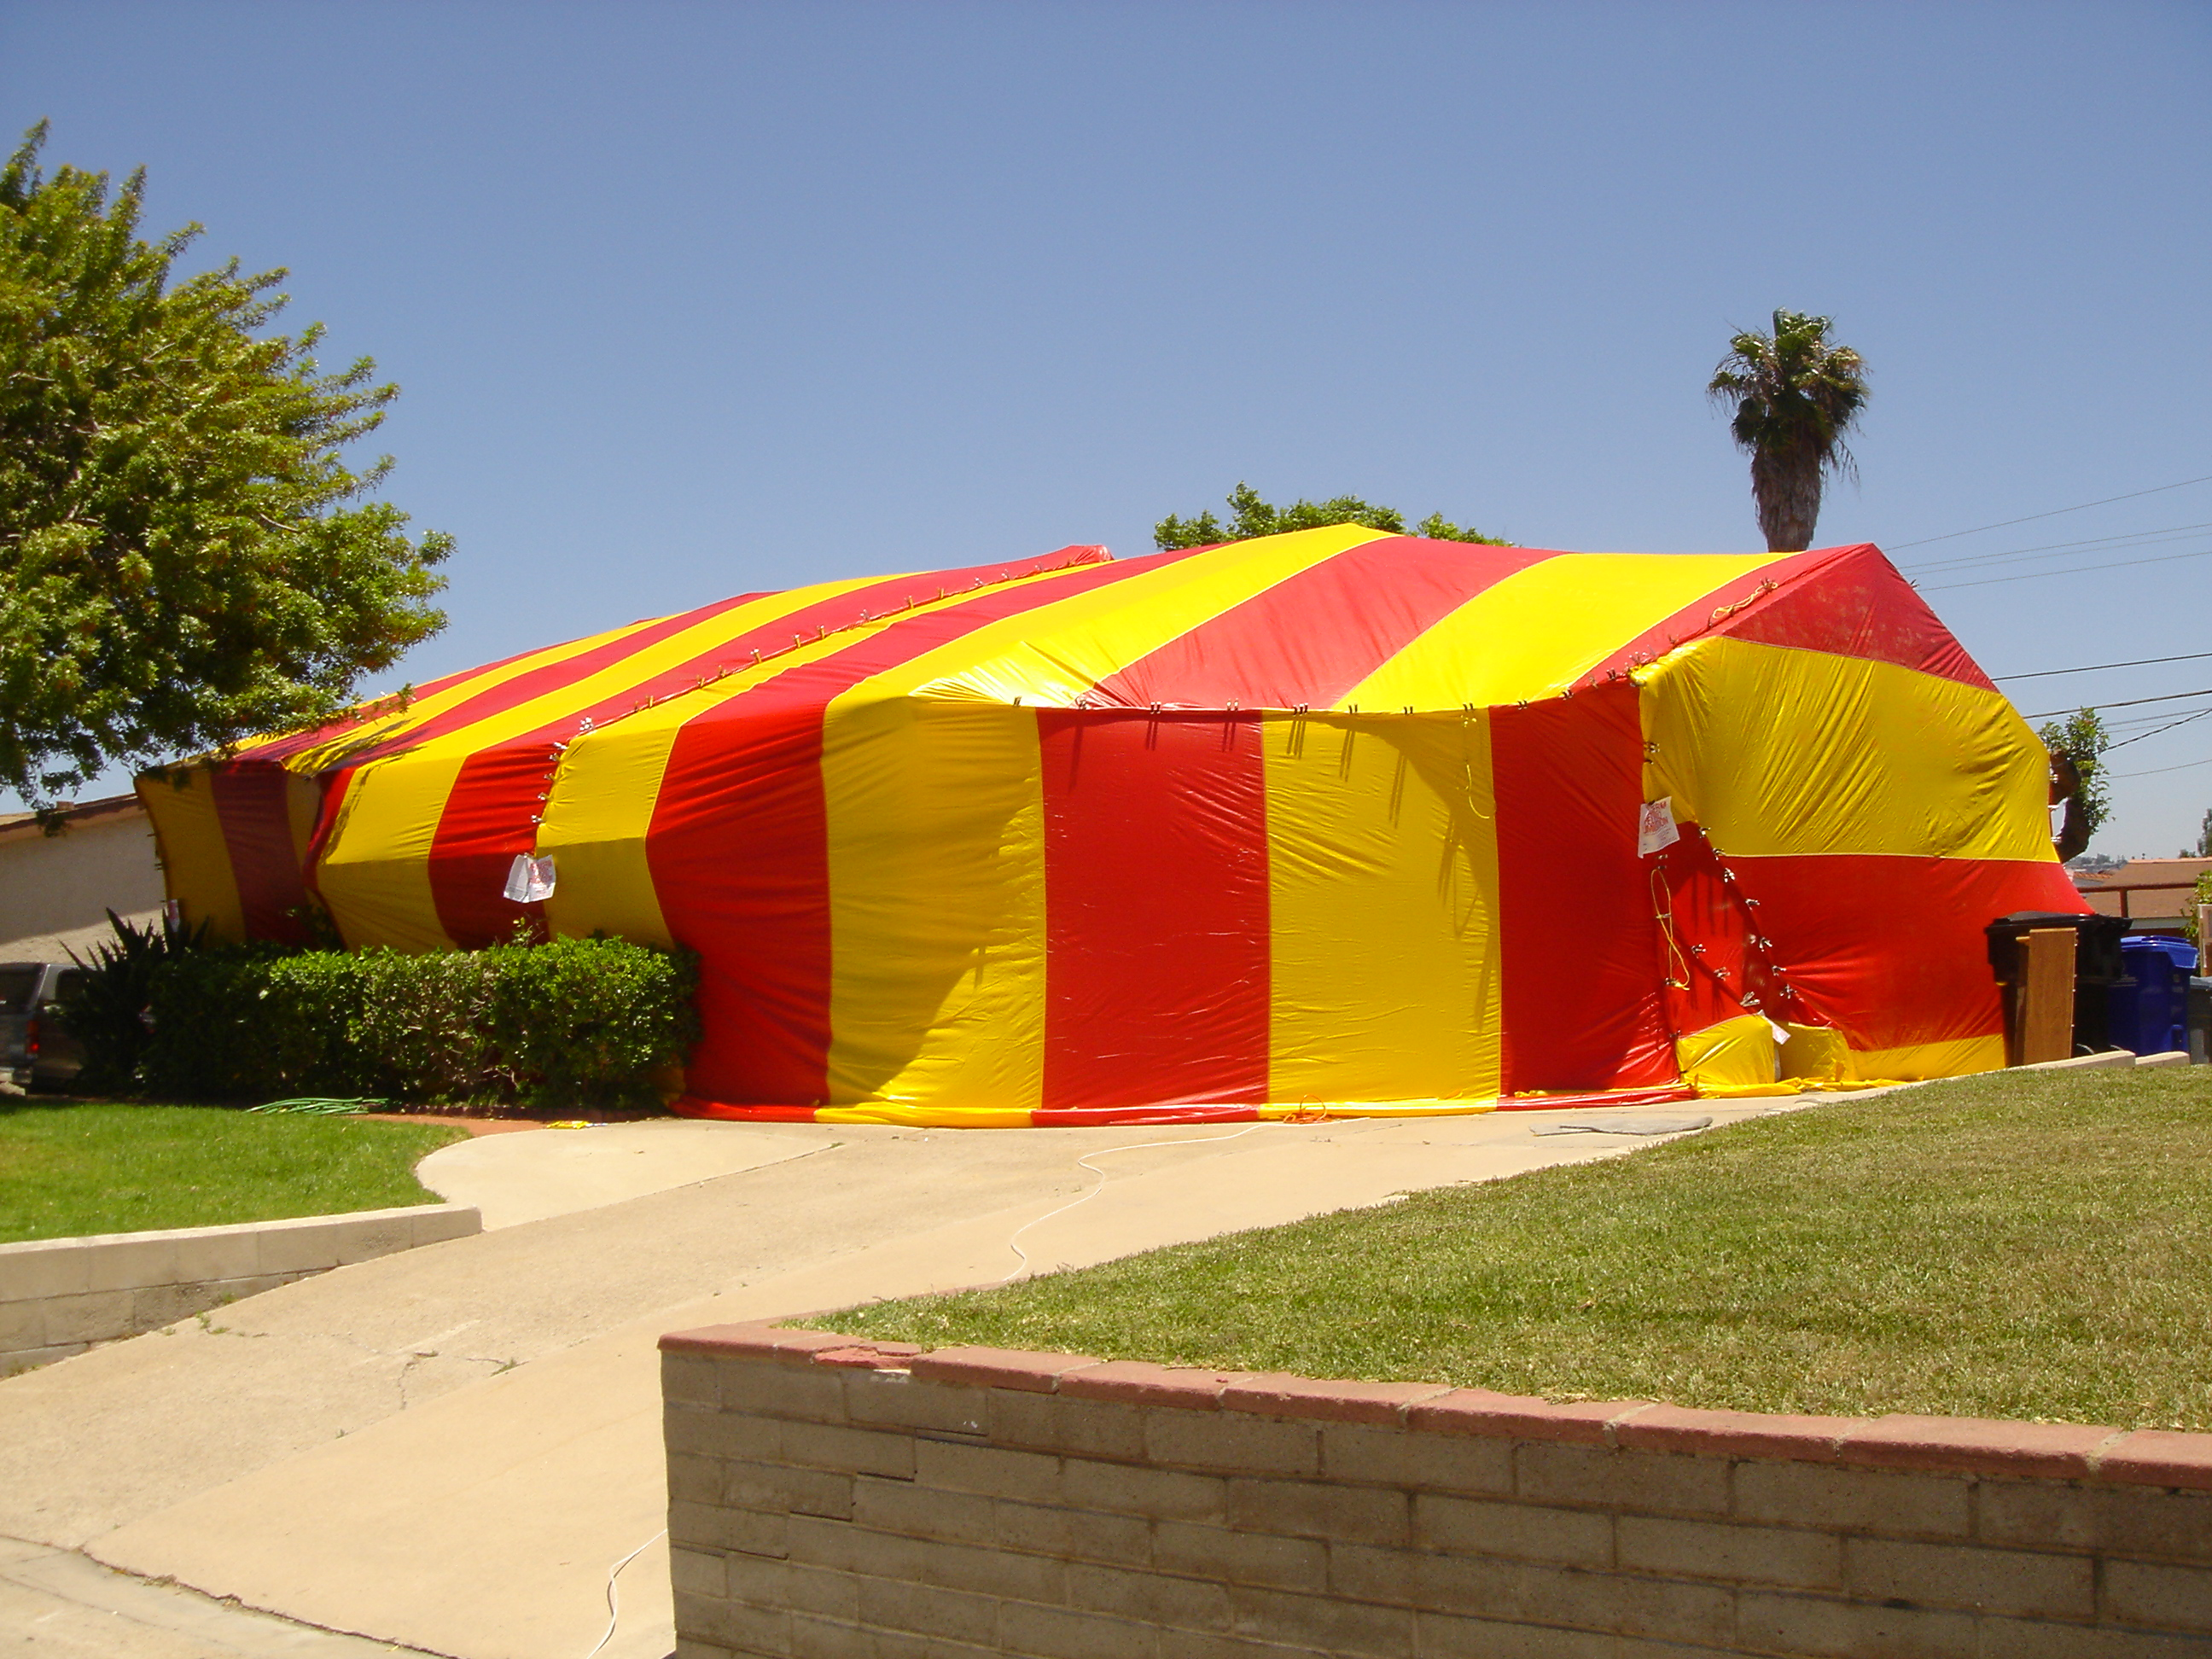 house being fumigated red and yellow